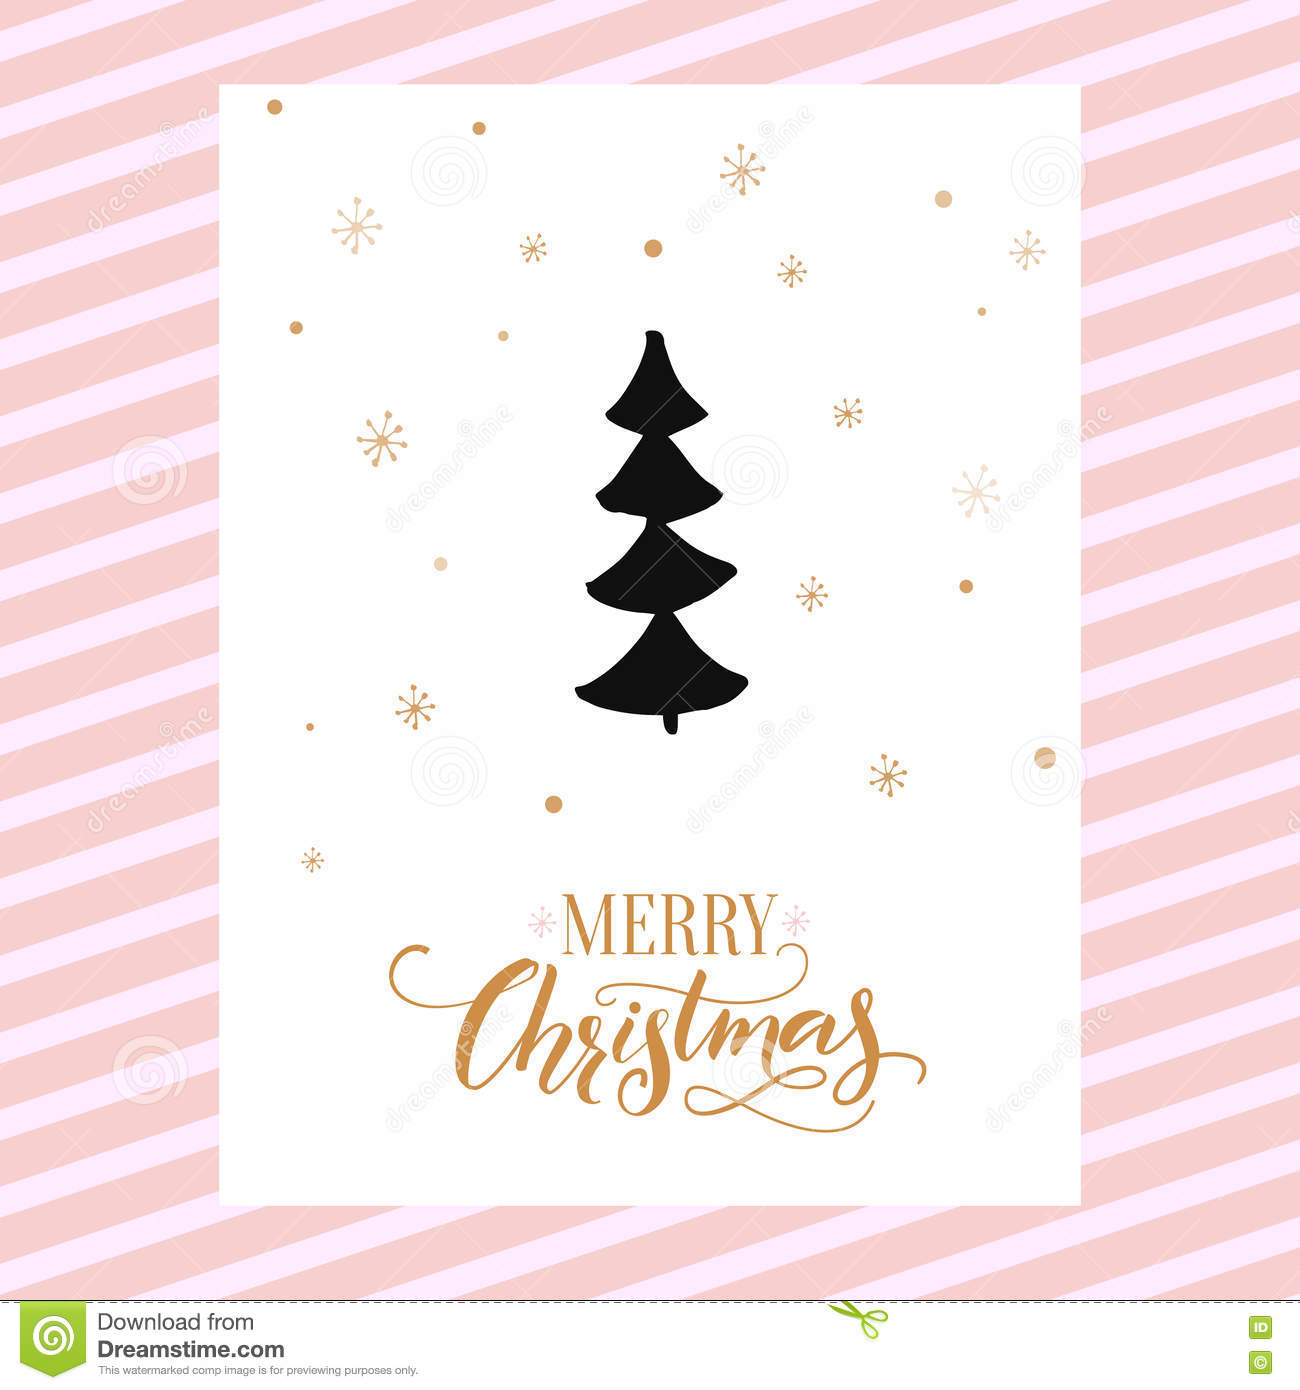 Merry christmas card design with calligraphy and simple hand drawn merry christmas card design with calligraphy and simple hand drawn christmas tree vector template design kristyandbryce Gallery